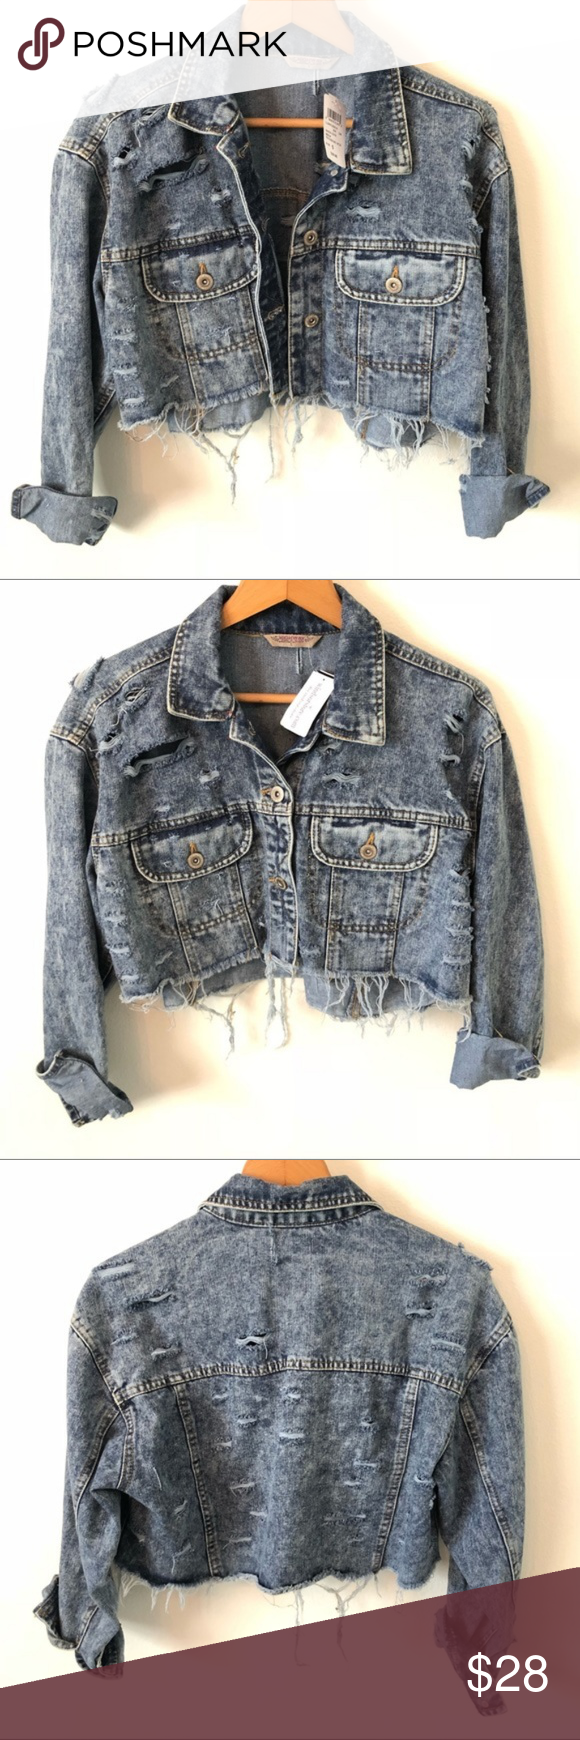 10bc4686de94 NWT WINDSOR Distressed Jean Cropped Jacket ➖DETAILS ➖ Distressed denim  jacket with destructed raw edge hemline Condition  Brand new with tags  Size  S ...